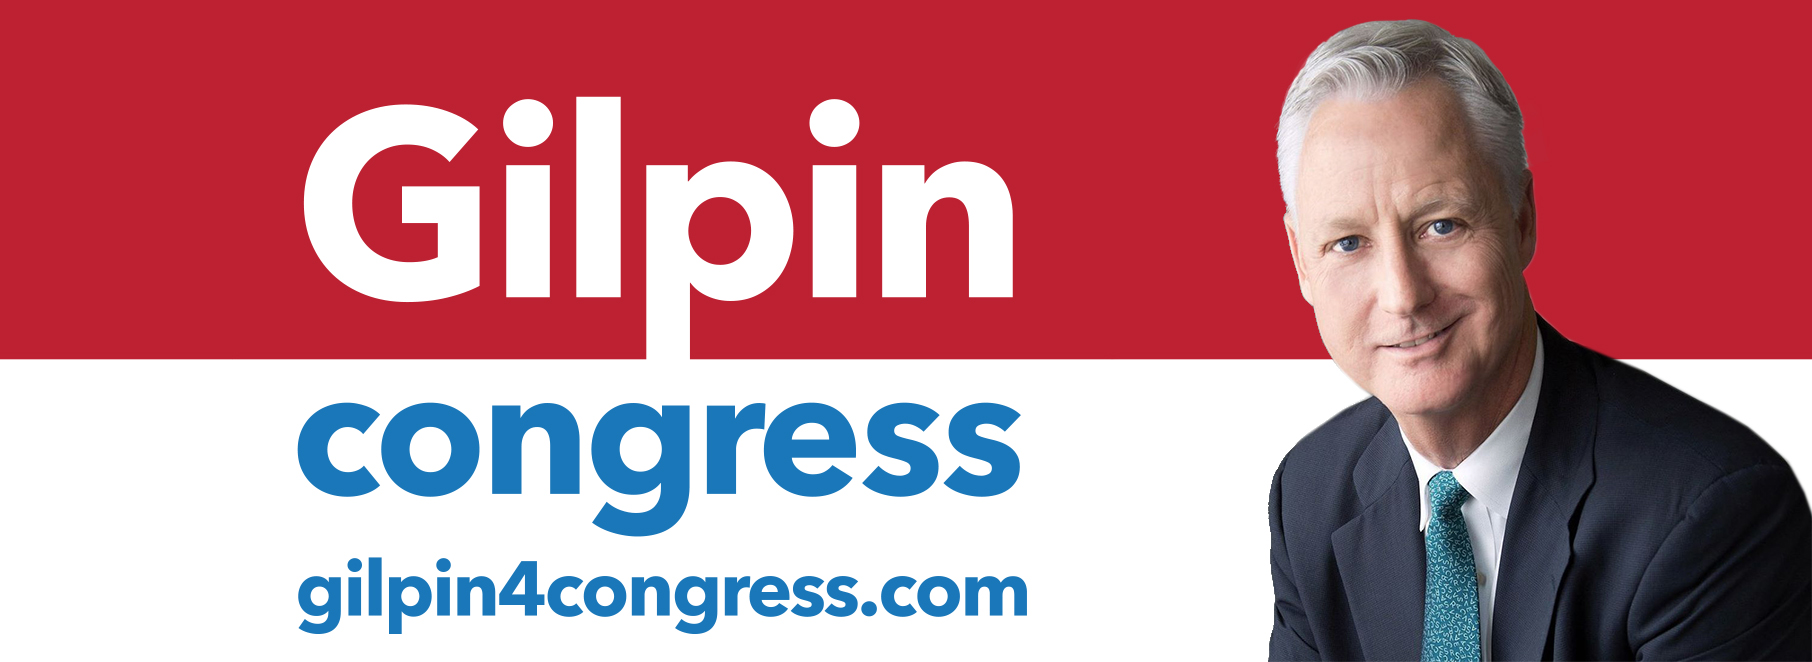 Gilpin For Congress 2018